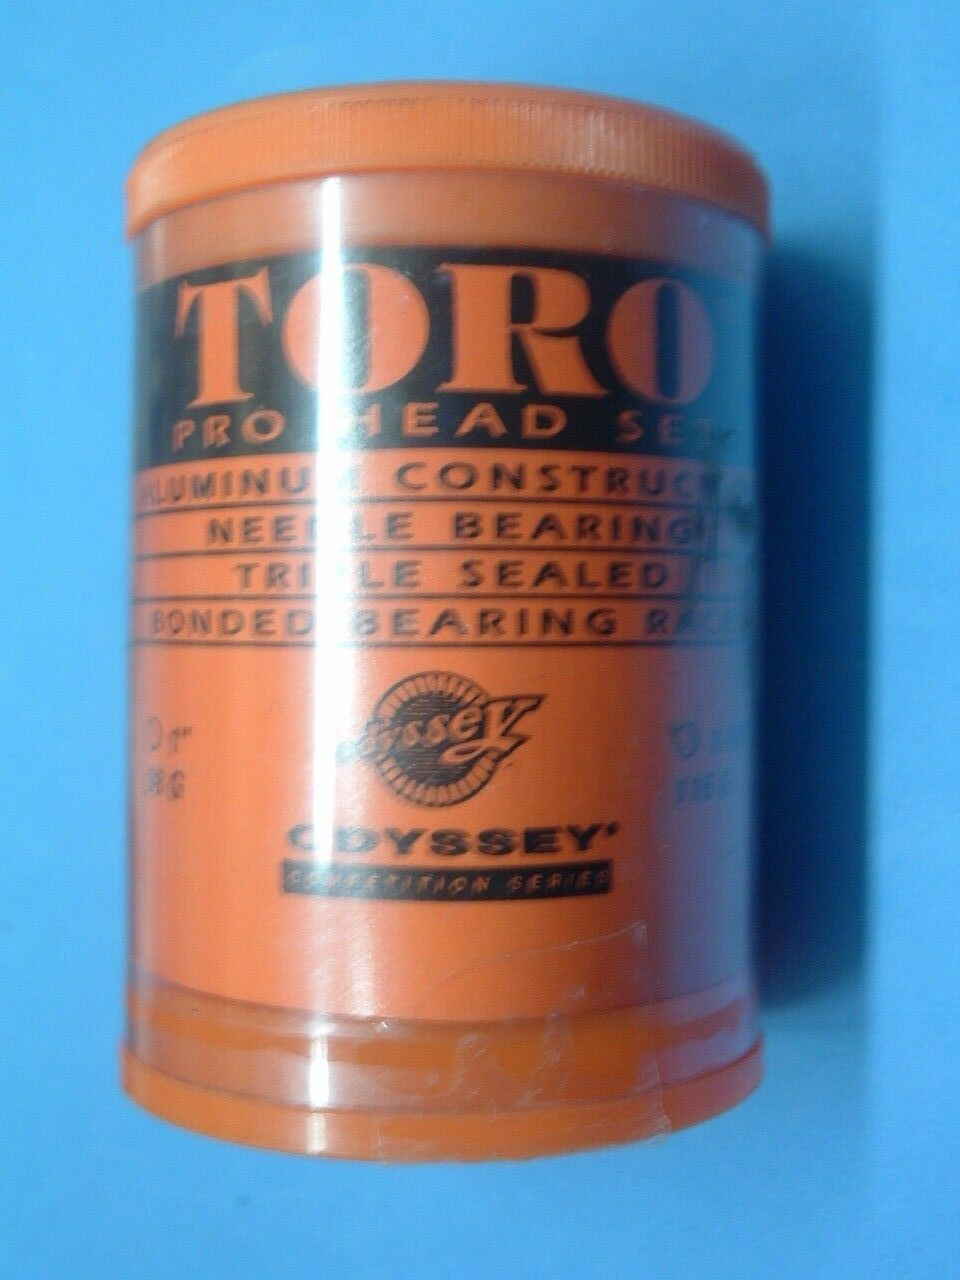 Odyssey Tgold  Pro Needle Roller Bearing NEW   NOS 1-1 8  Headset- Vintage- NIB++  save on clearance